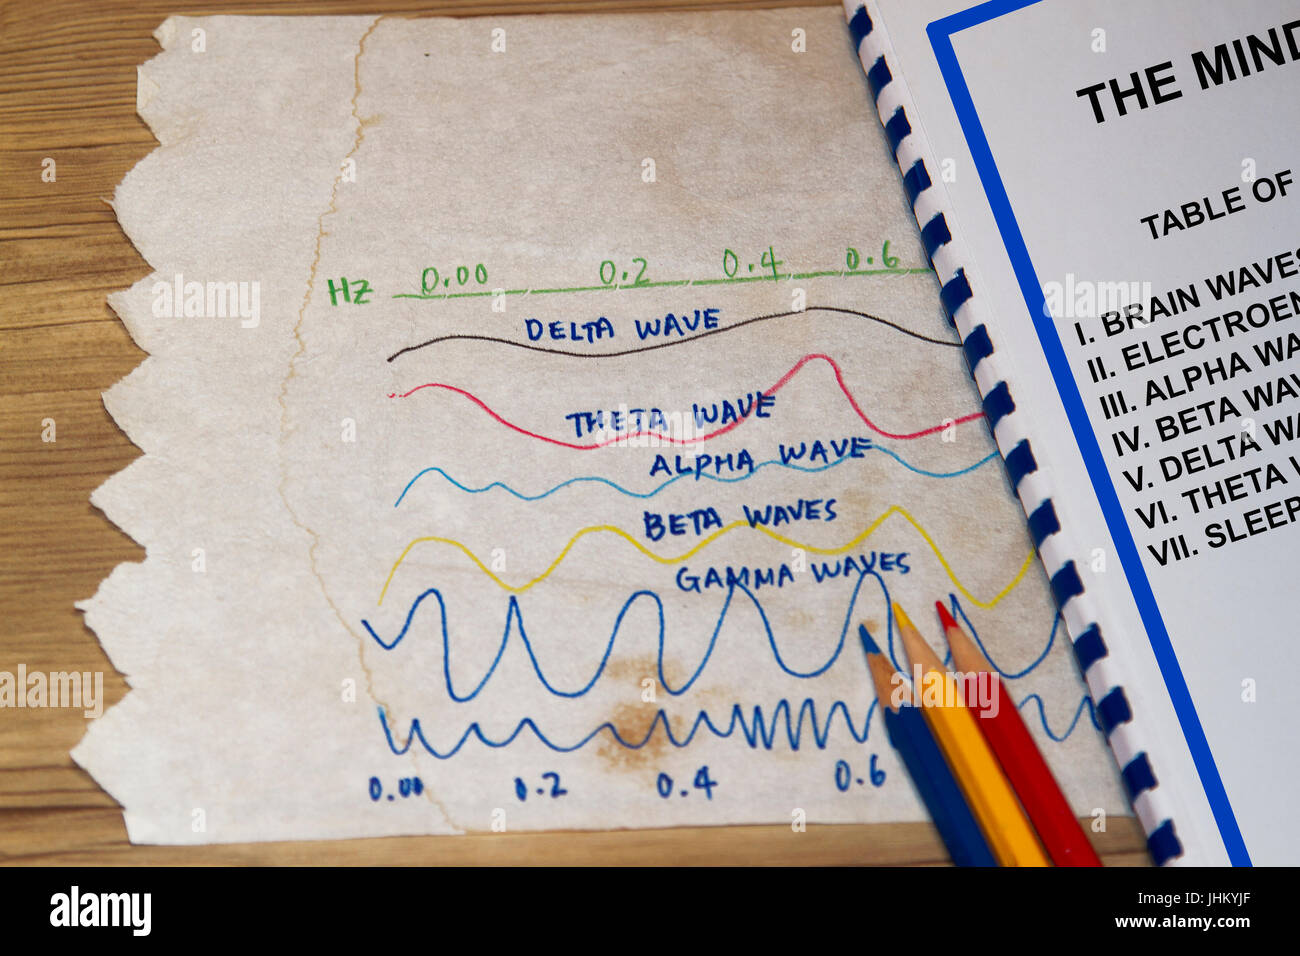 Brain waves concept- sketch with manual table of contents. - Stock Image